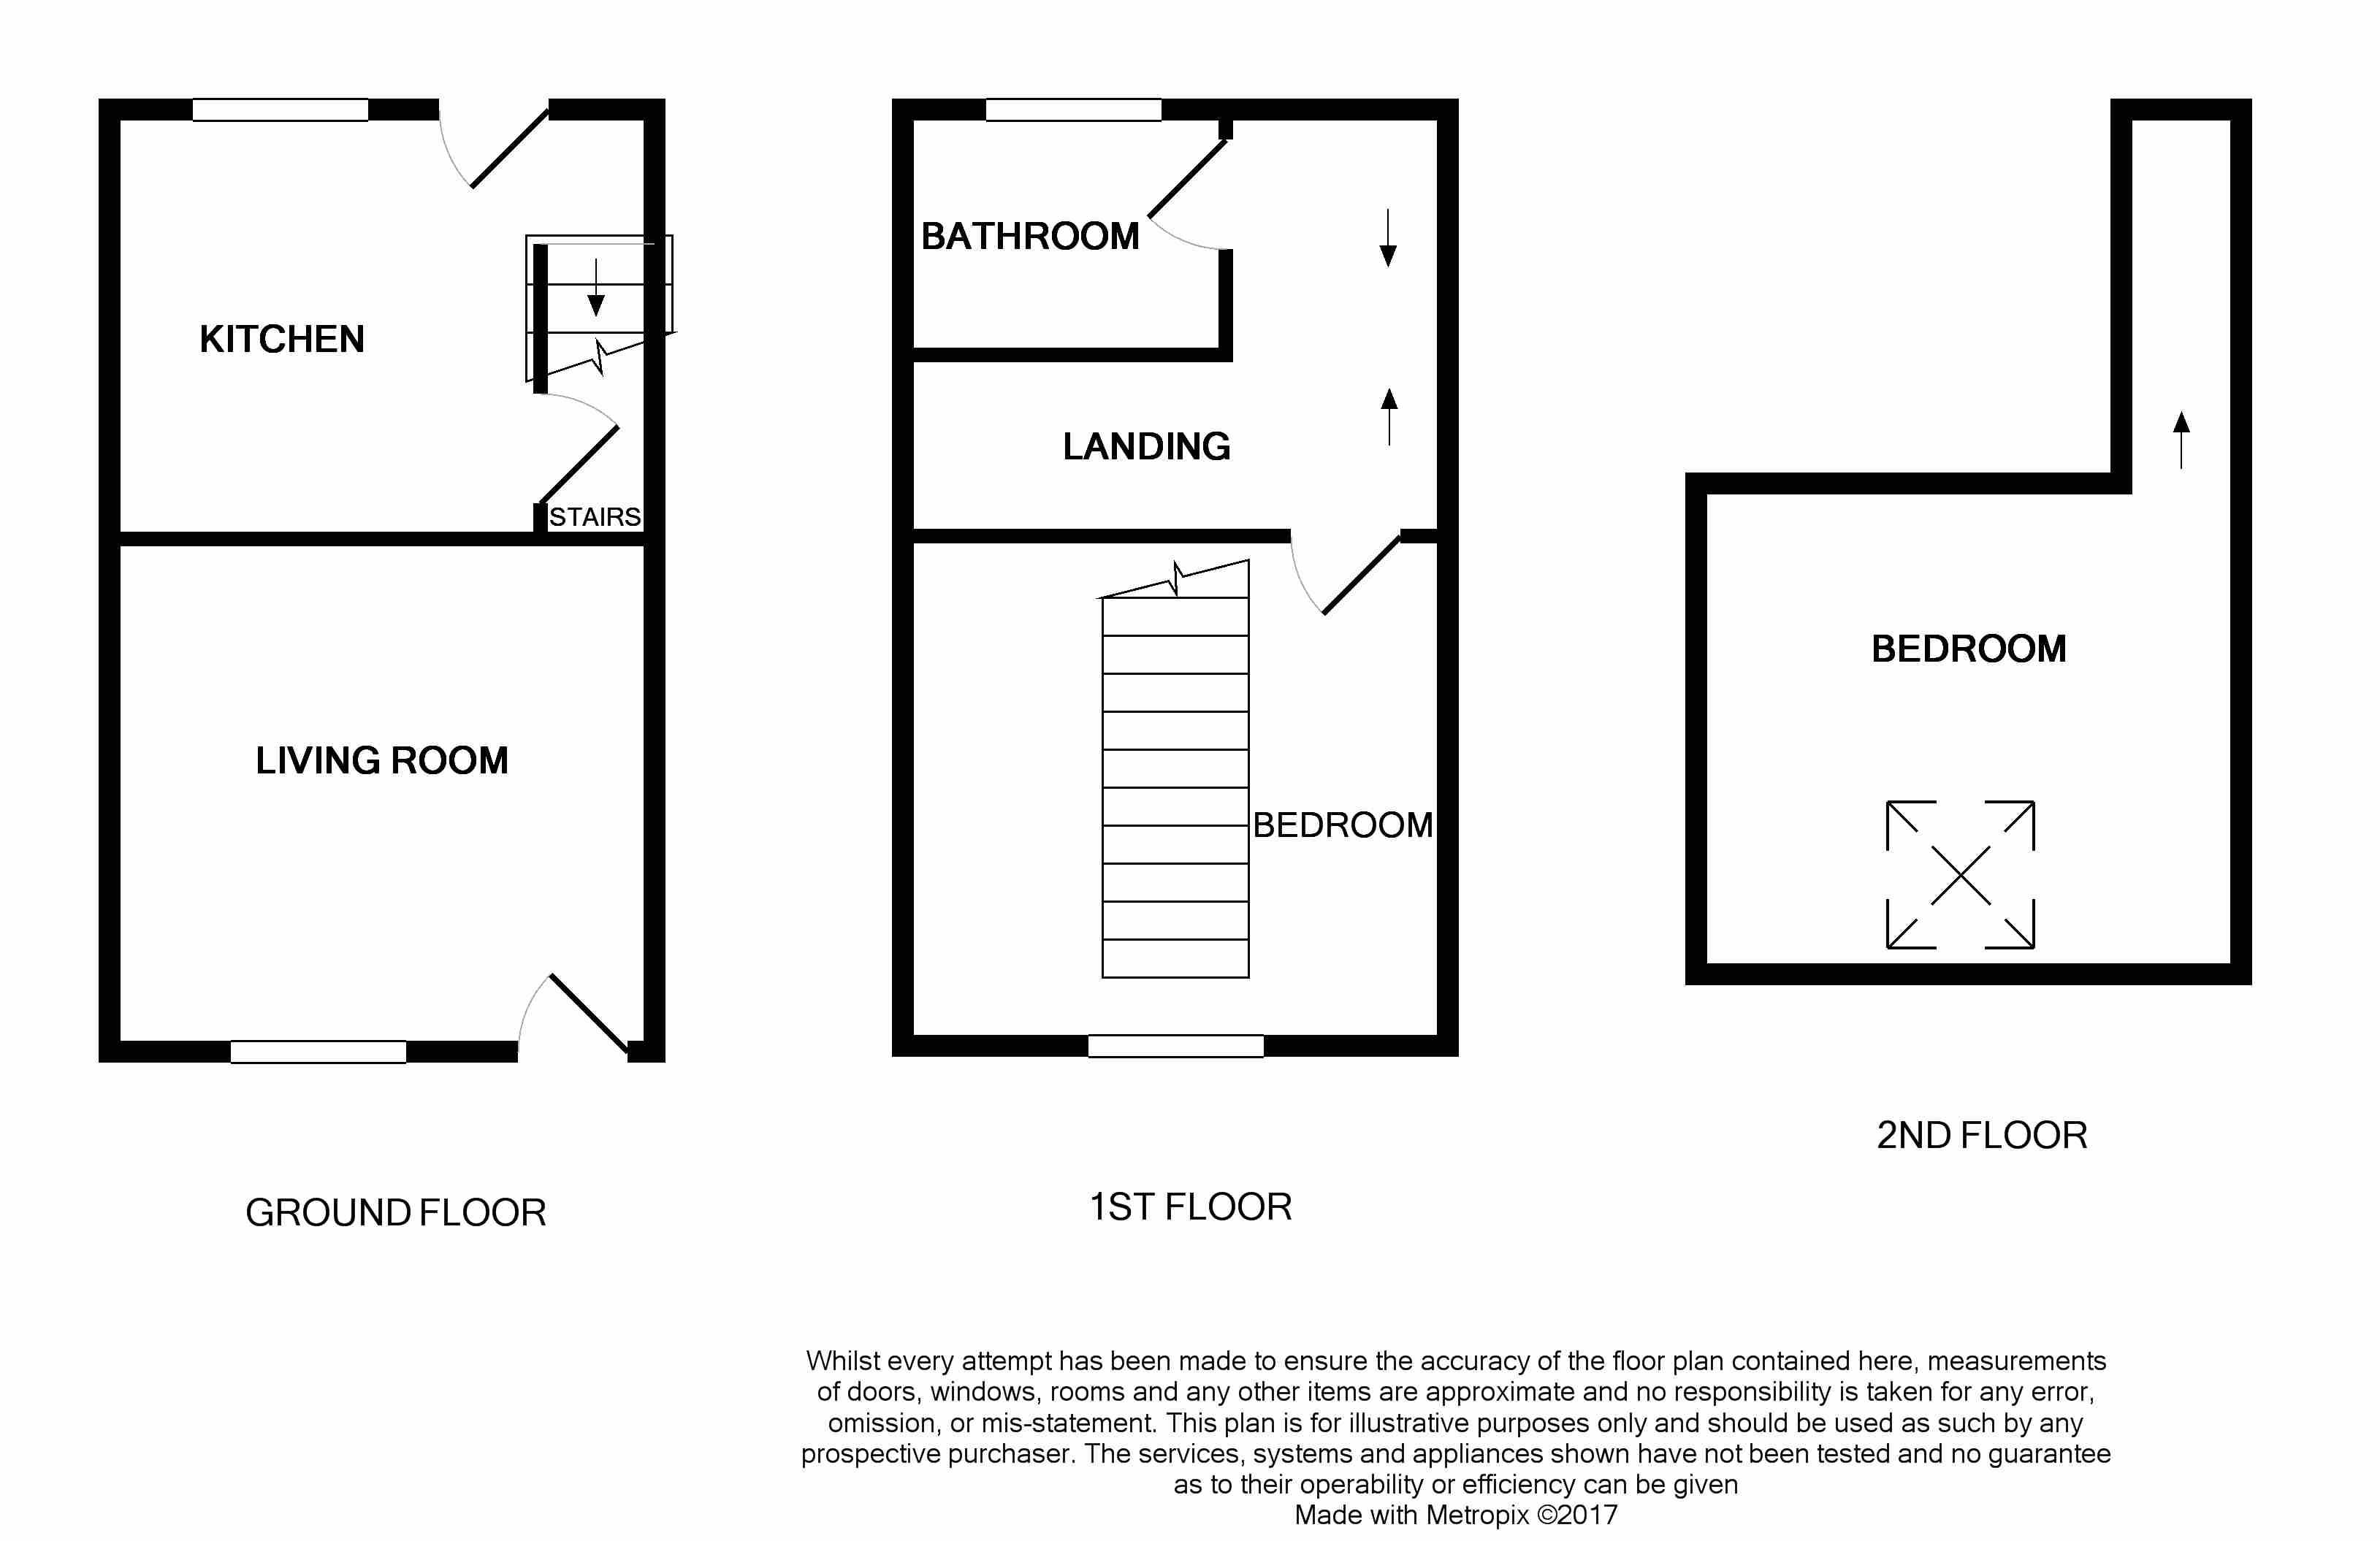 2 bed terraced house for sale in ridge hill lane for 16 brookers lane floor plans